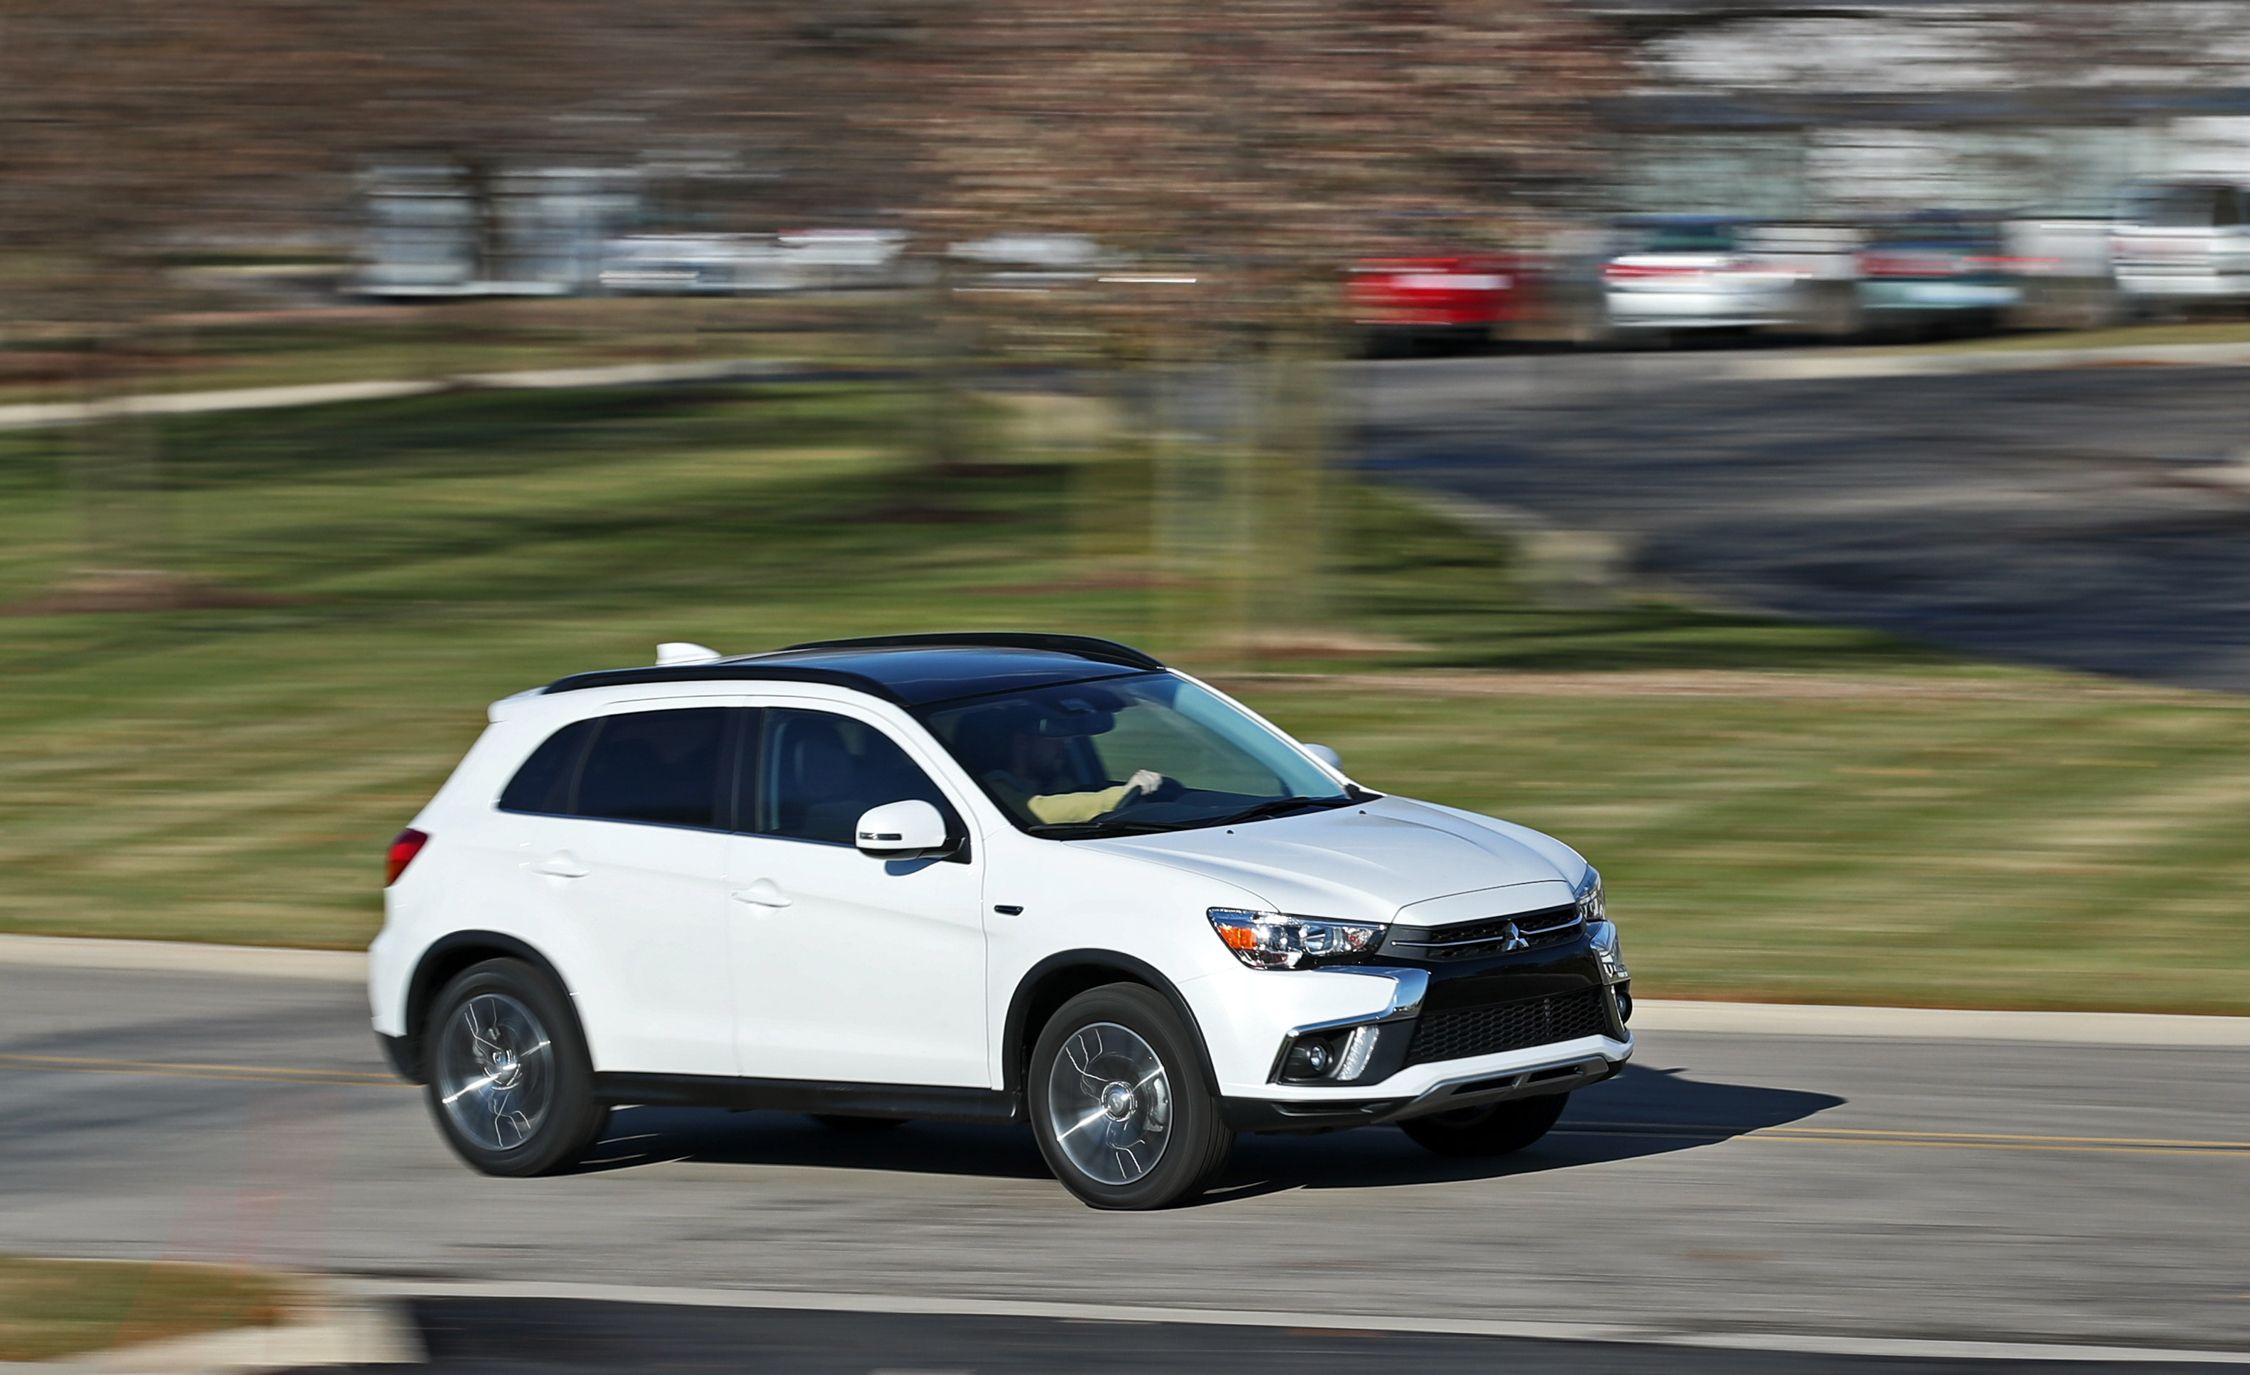 awc outlander awd gts news mitsubishi suv s crossover gt doors